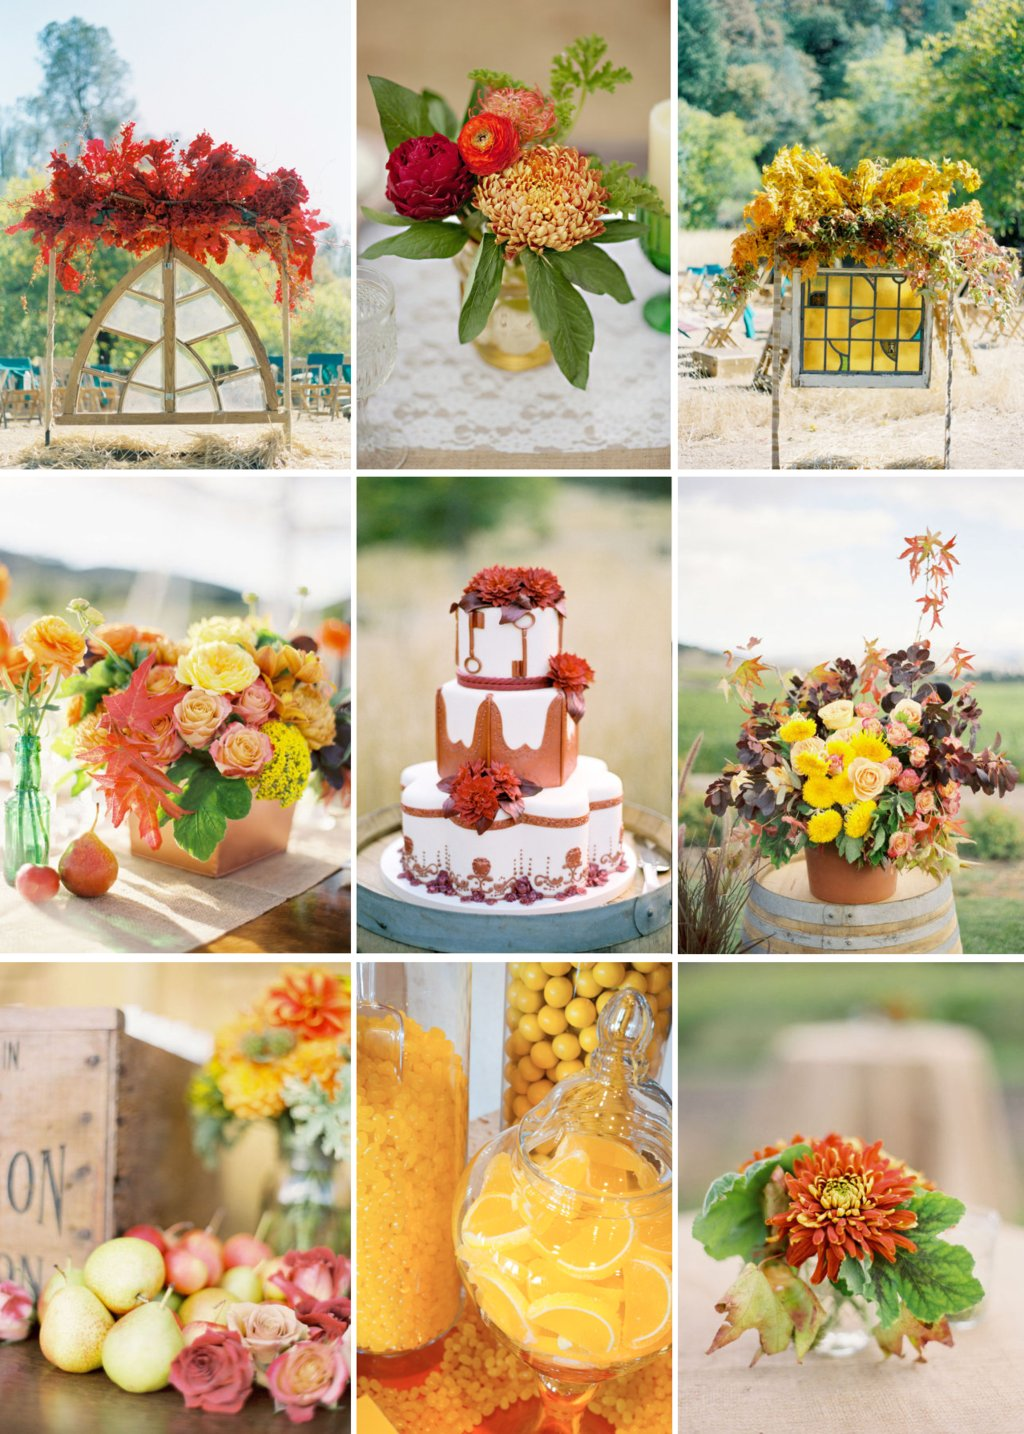 Citrus-cinnamon-wedding-color-palette-orange-yellow-green-wedding-flowers-cake-centerpieces.full